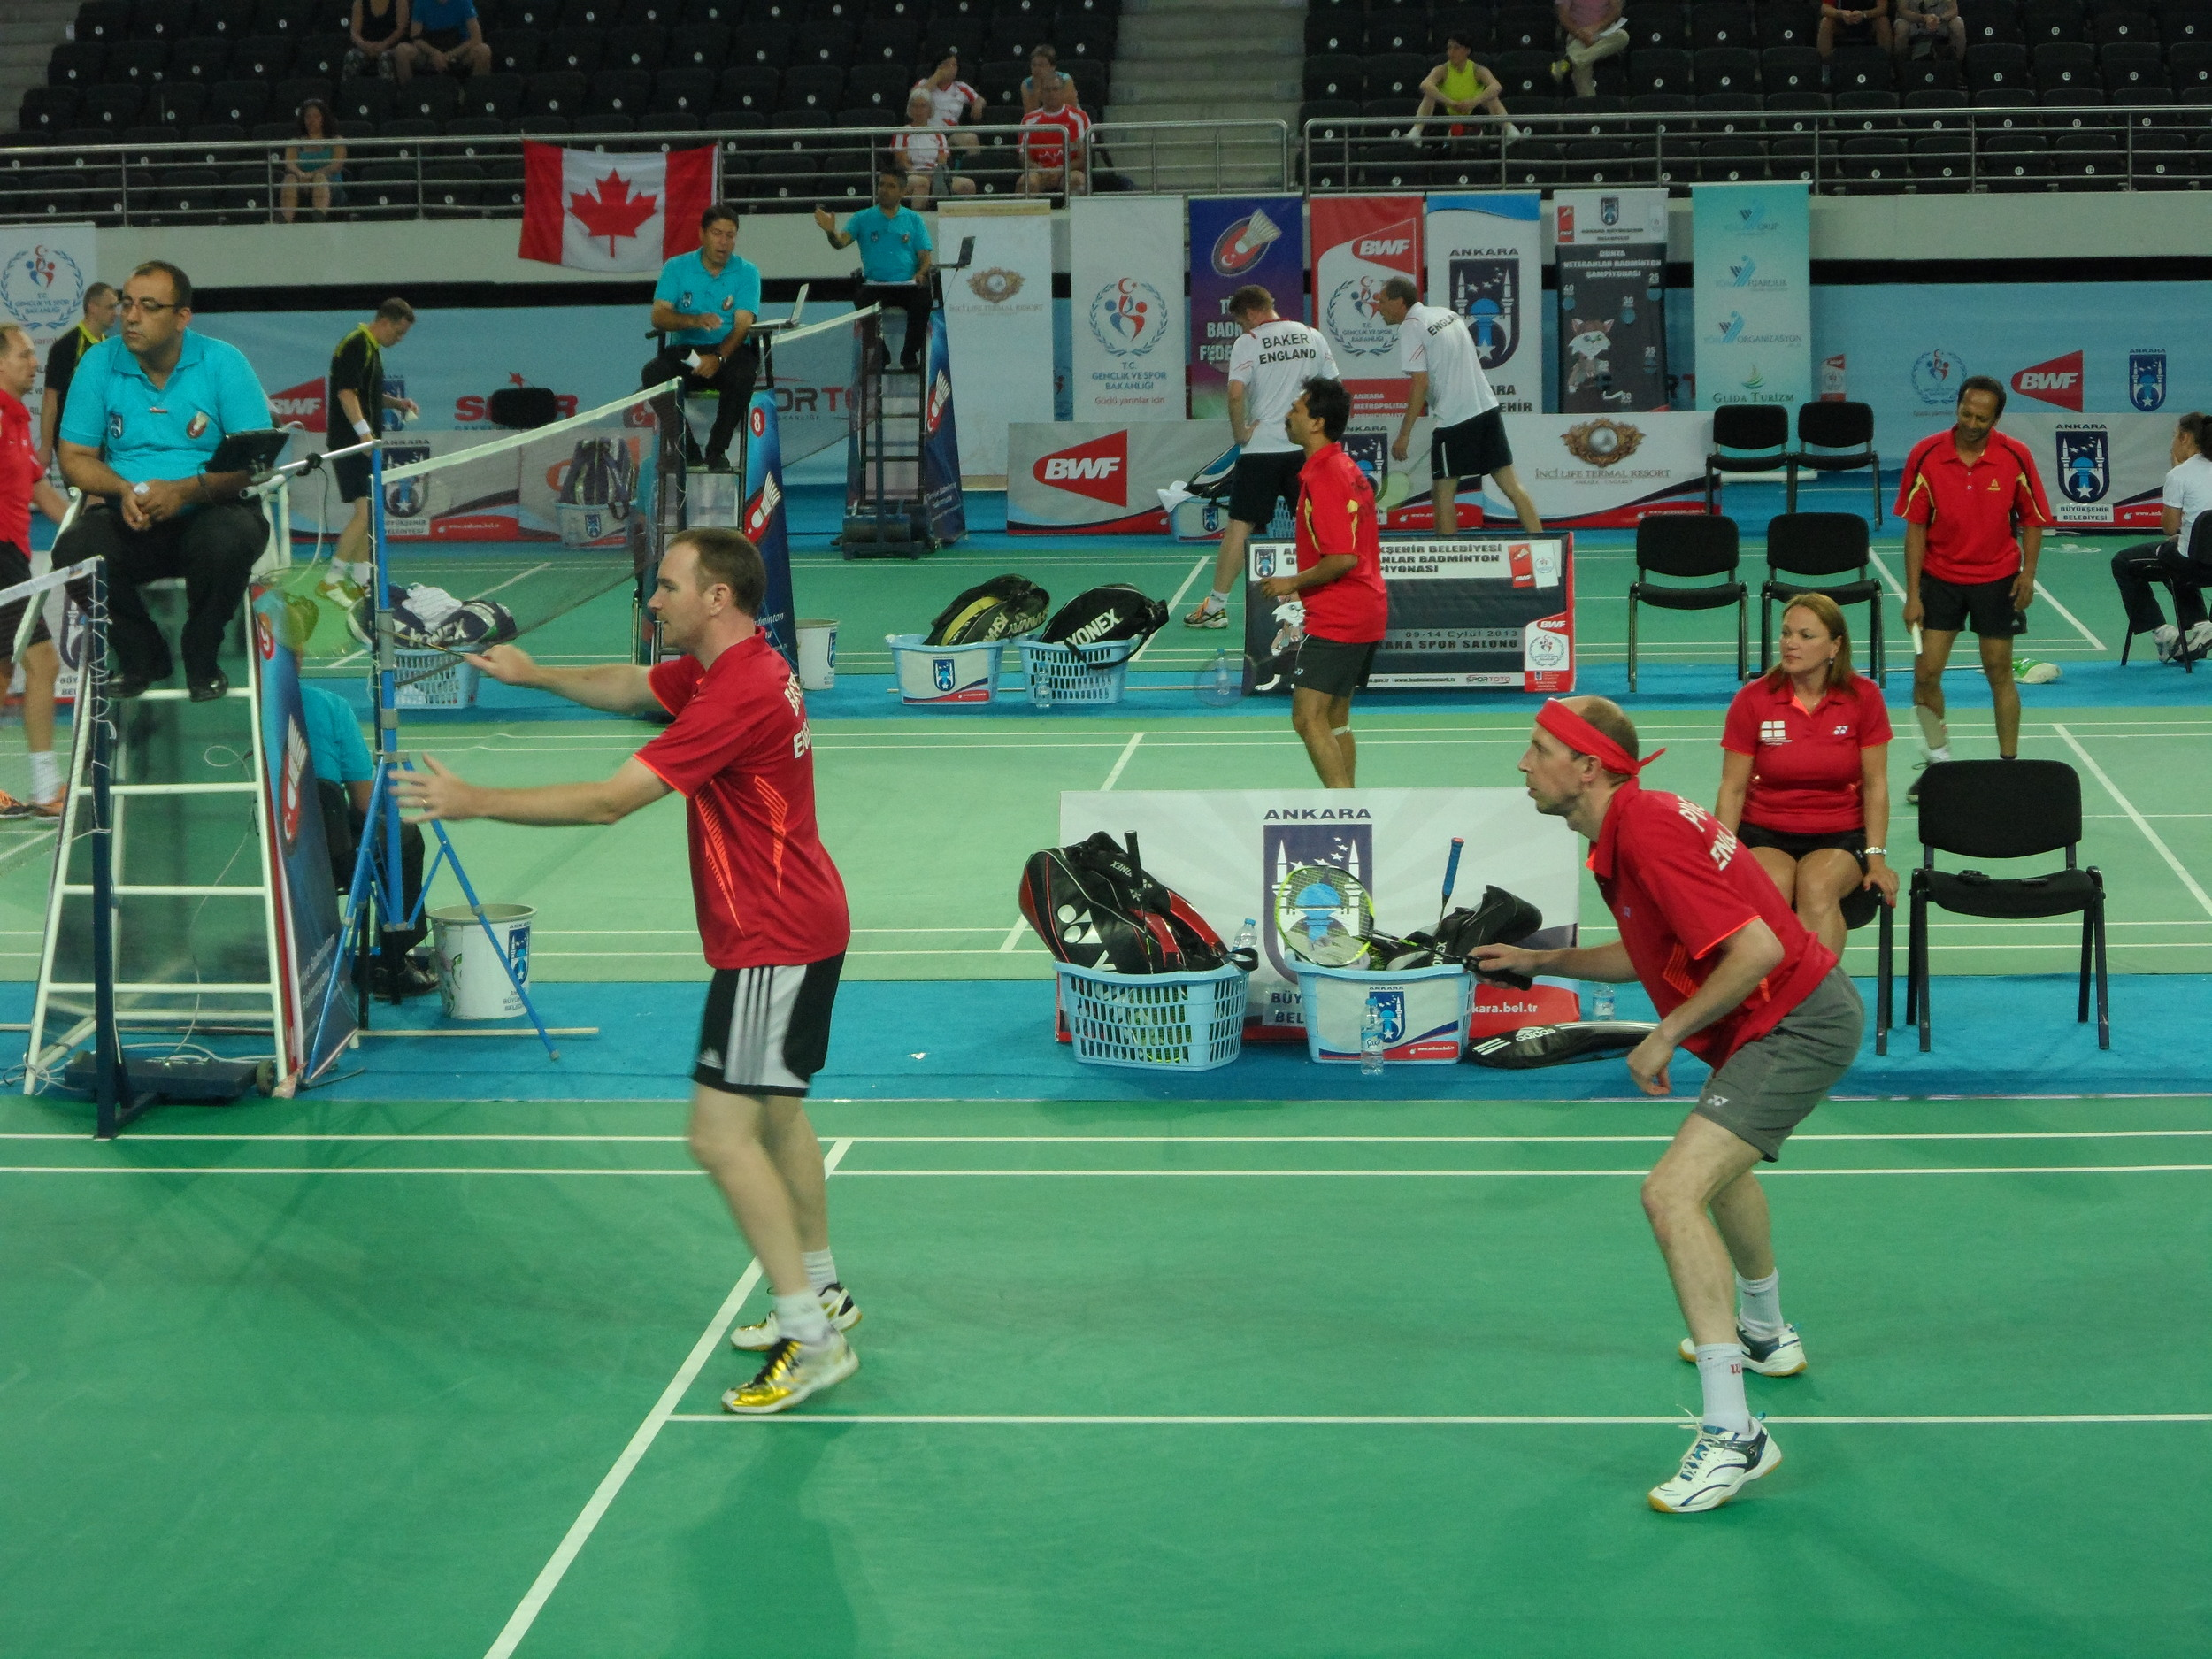 Daniel Bates and Neil Place at the BWF World Masters Championships.